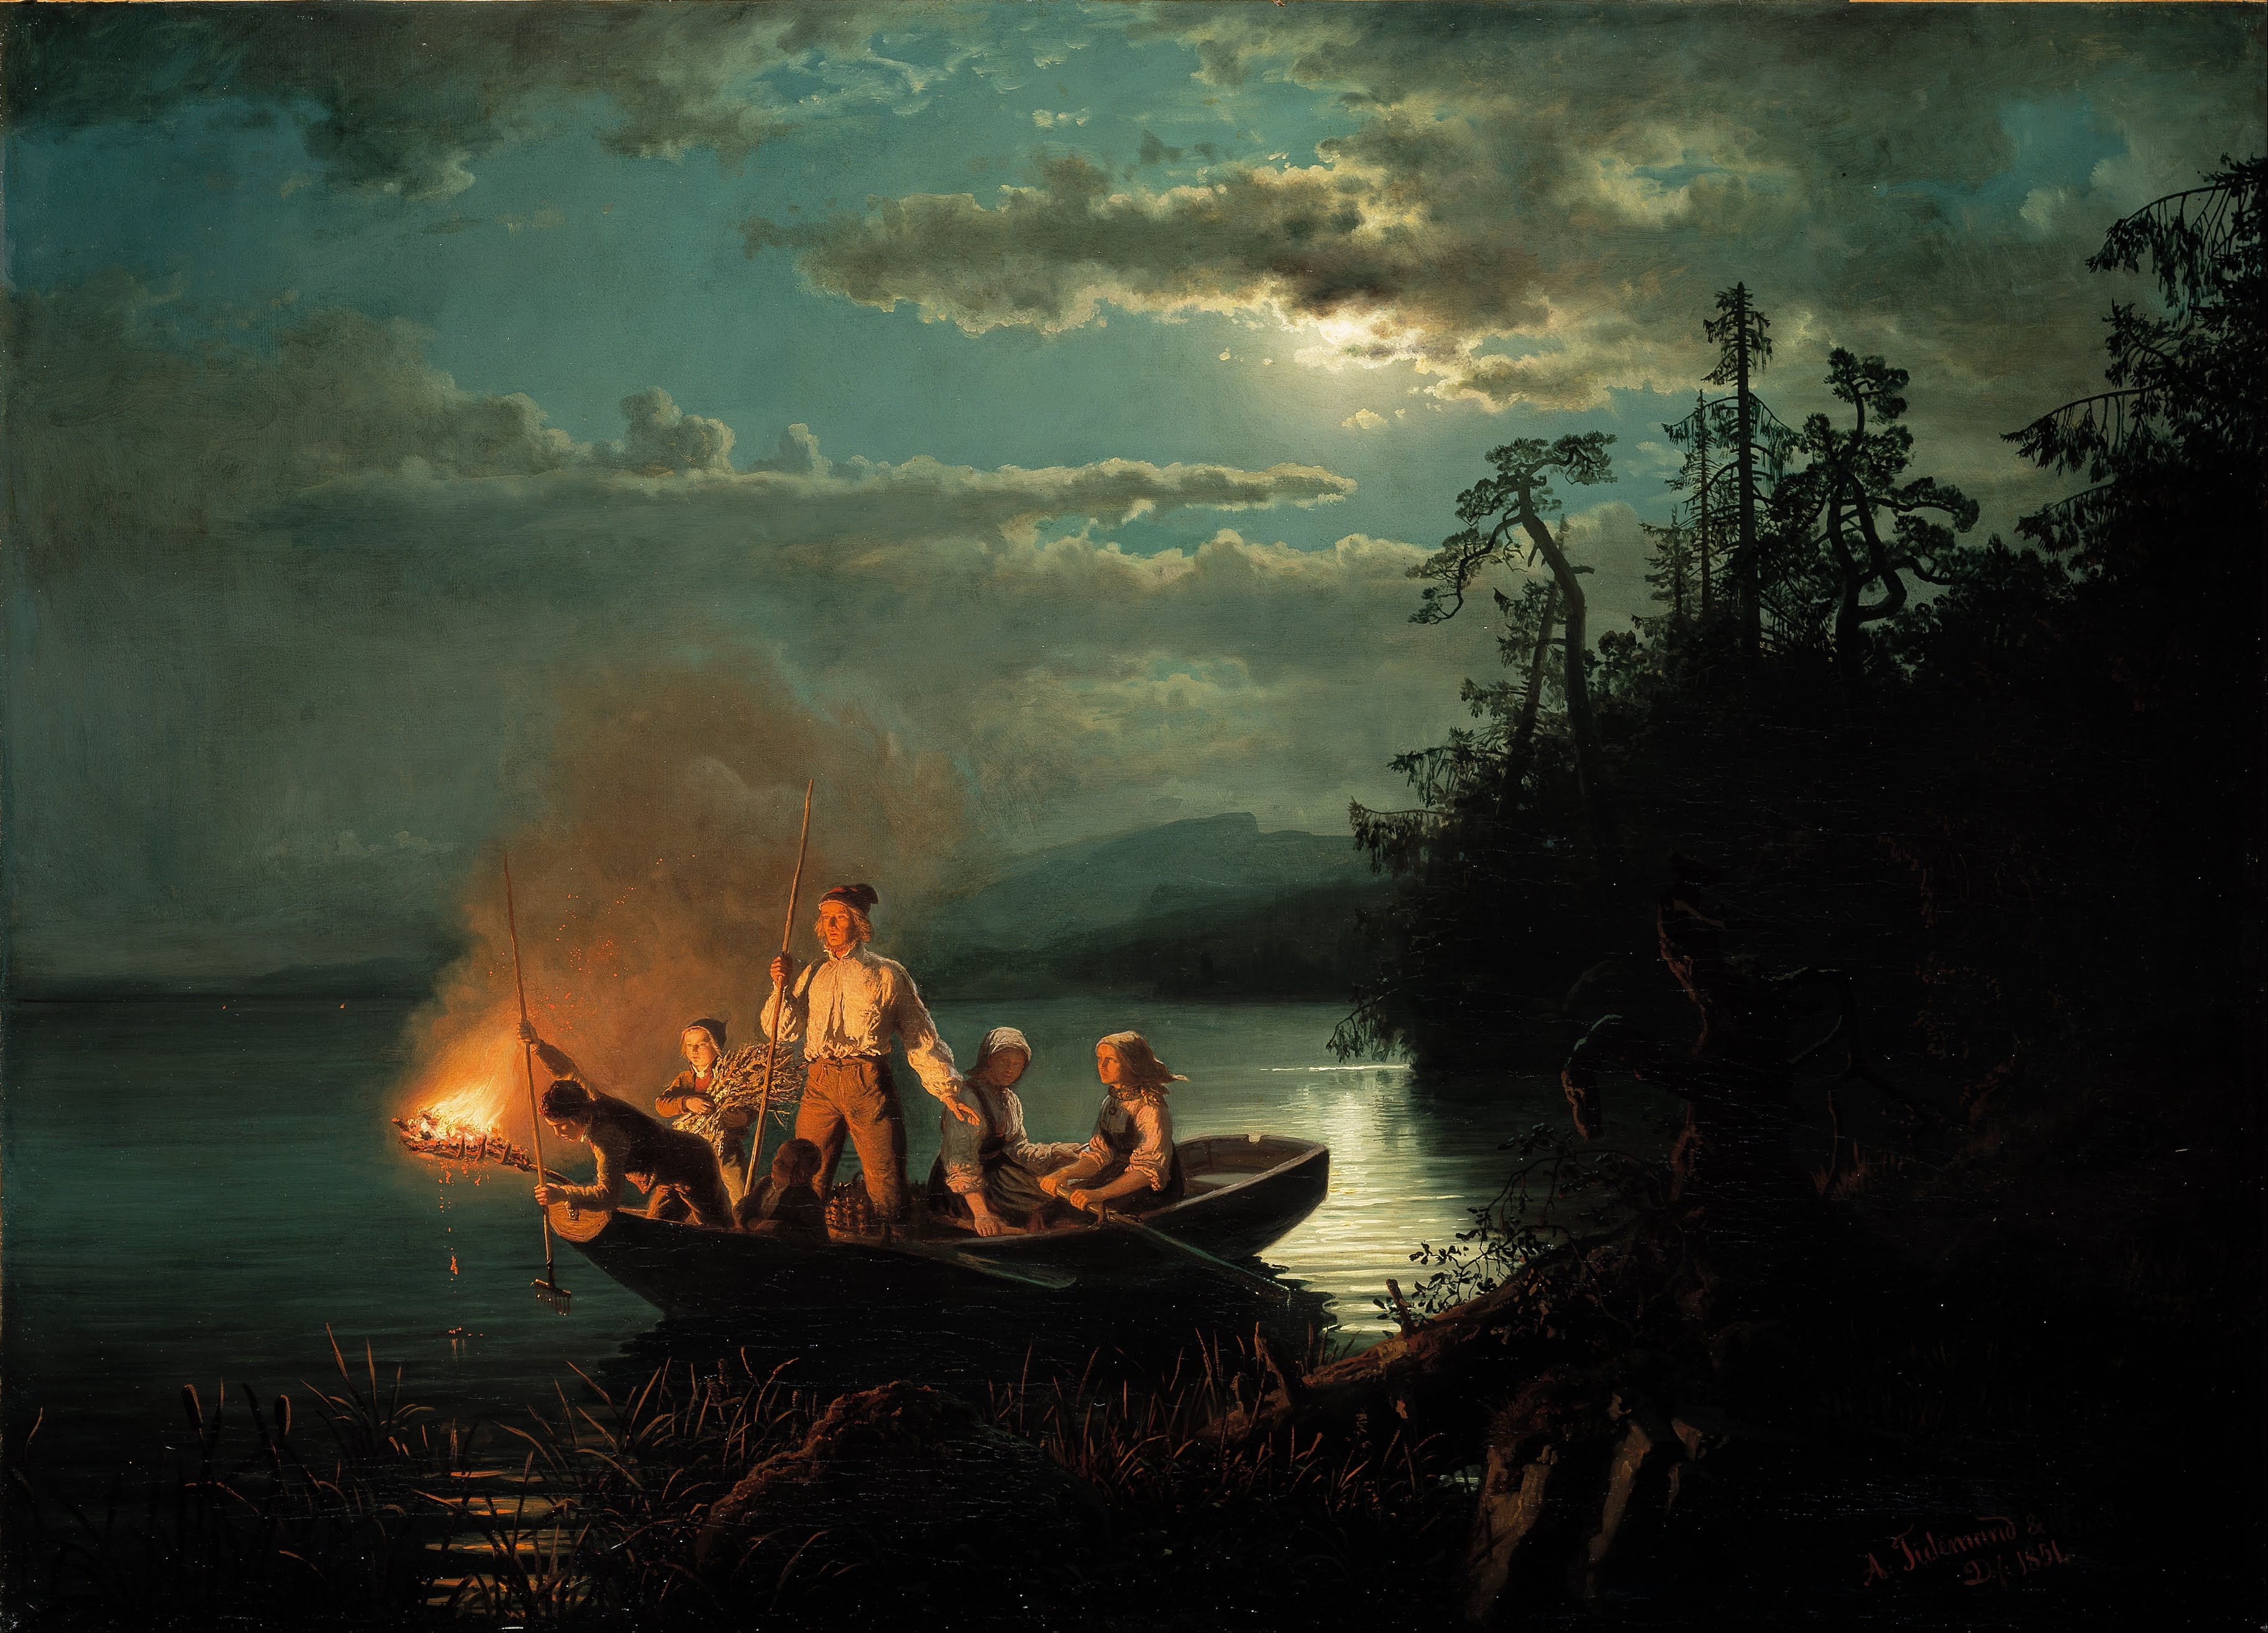 Nocturnal - the best nocturne paintings: Adolph Tidemand & Hans Gude, Fishing with a Harpoon